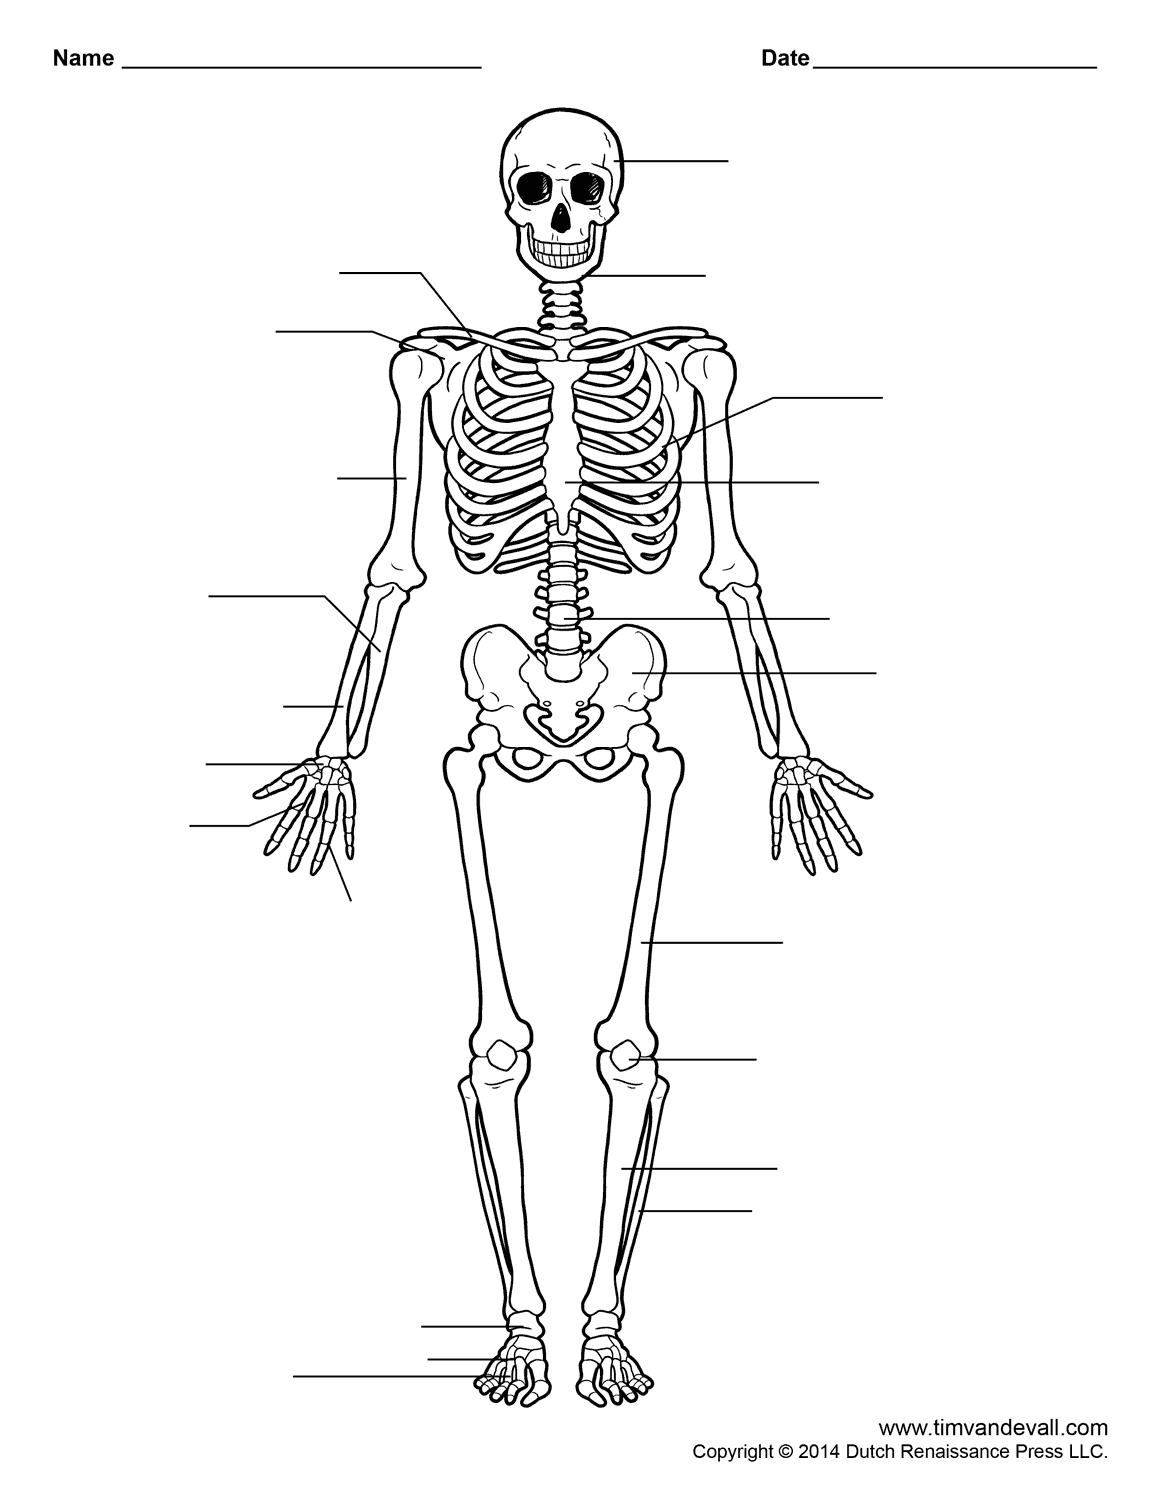 free printable human skeleton worksheet for students and teachers - Skeleton Worksheet